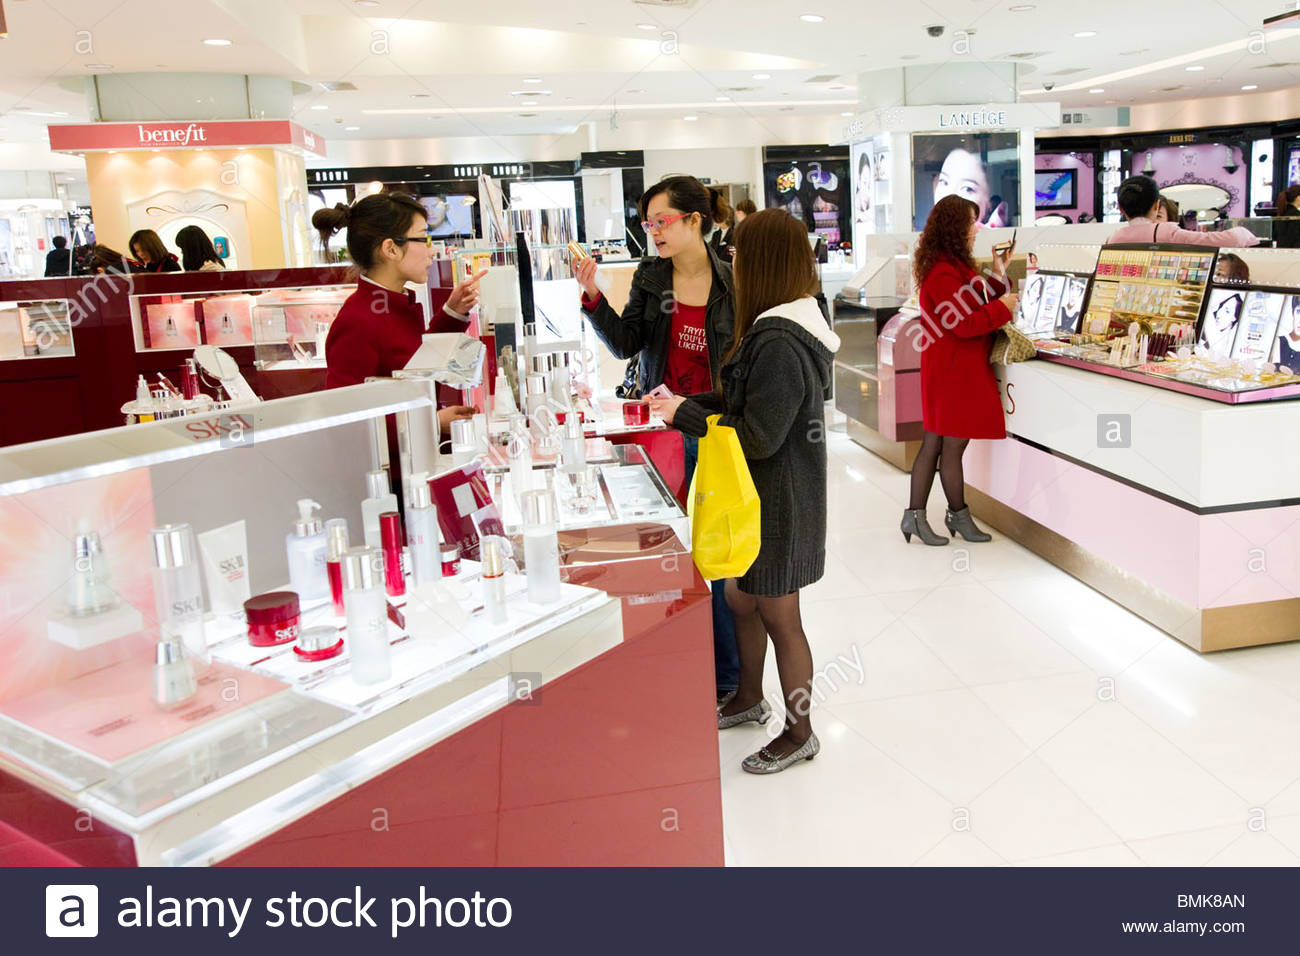 Shoppers at the cosmetics counter in the Pacific Department Store, Xujiahui shopping district, Shanghai, China - Stock Image